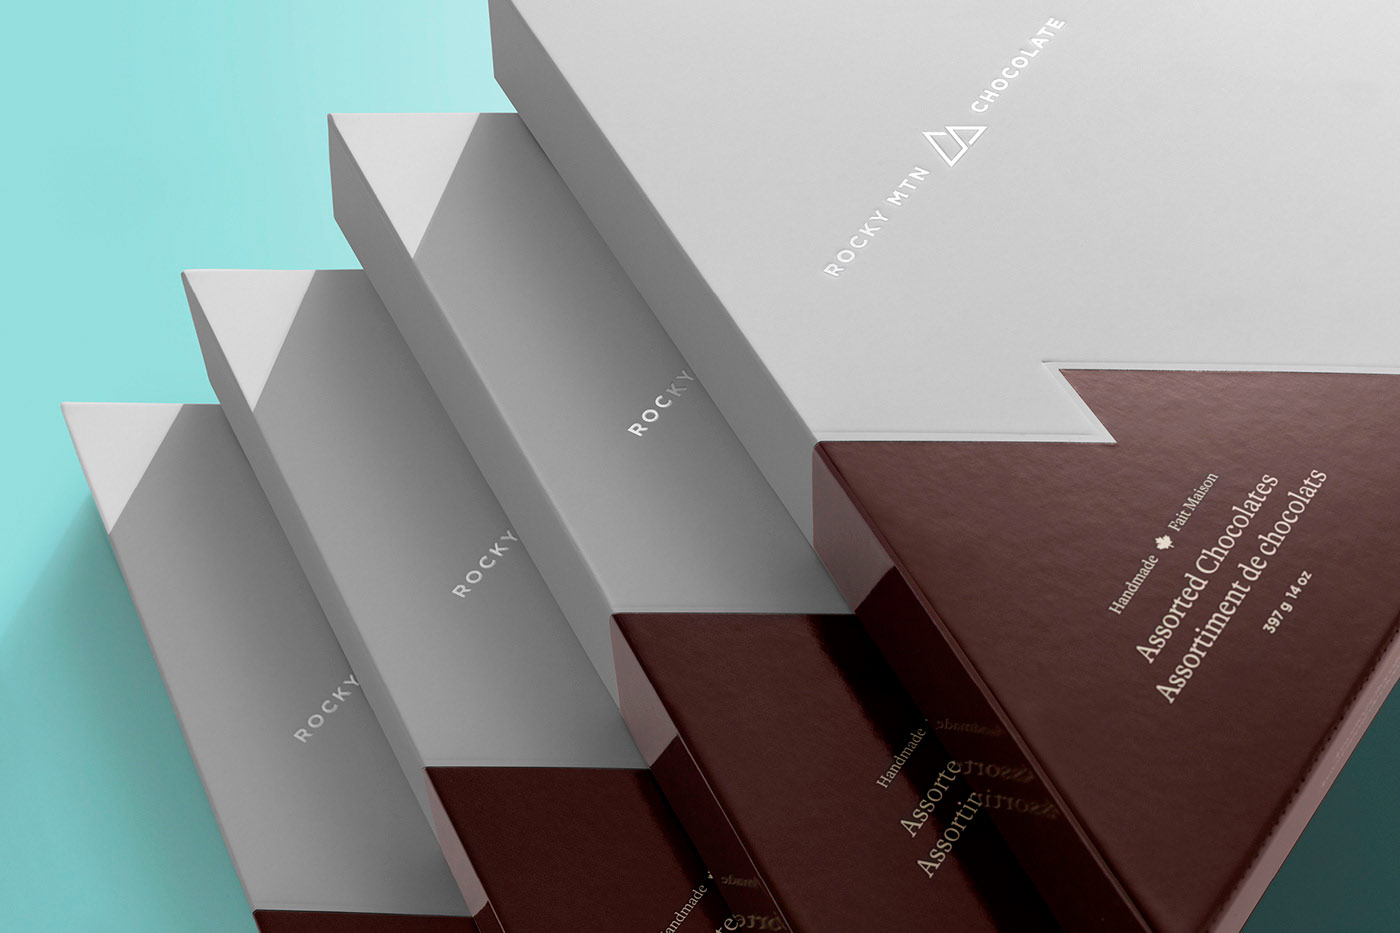 Rocky Mtn Chocolate Rebrand, Packaging and Store Design by by Wedge & Lever